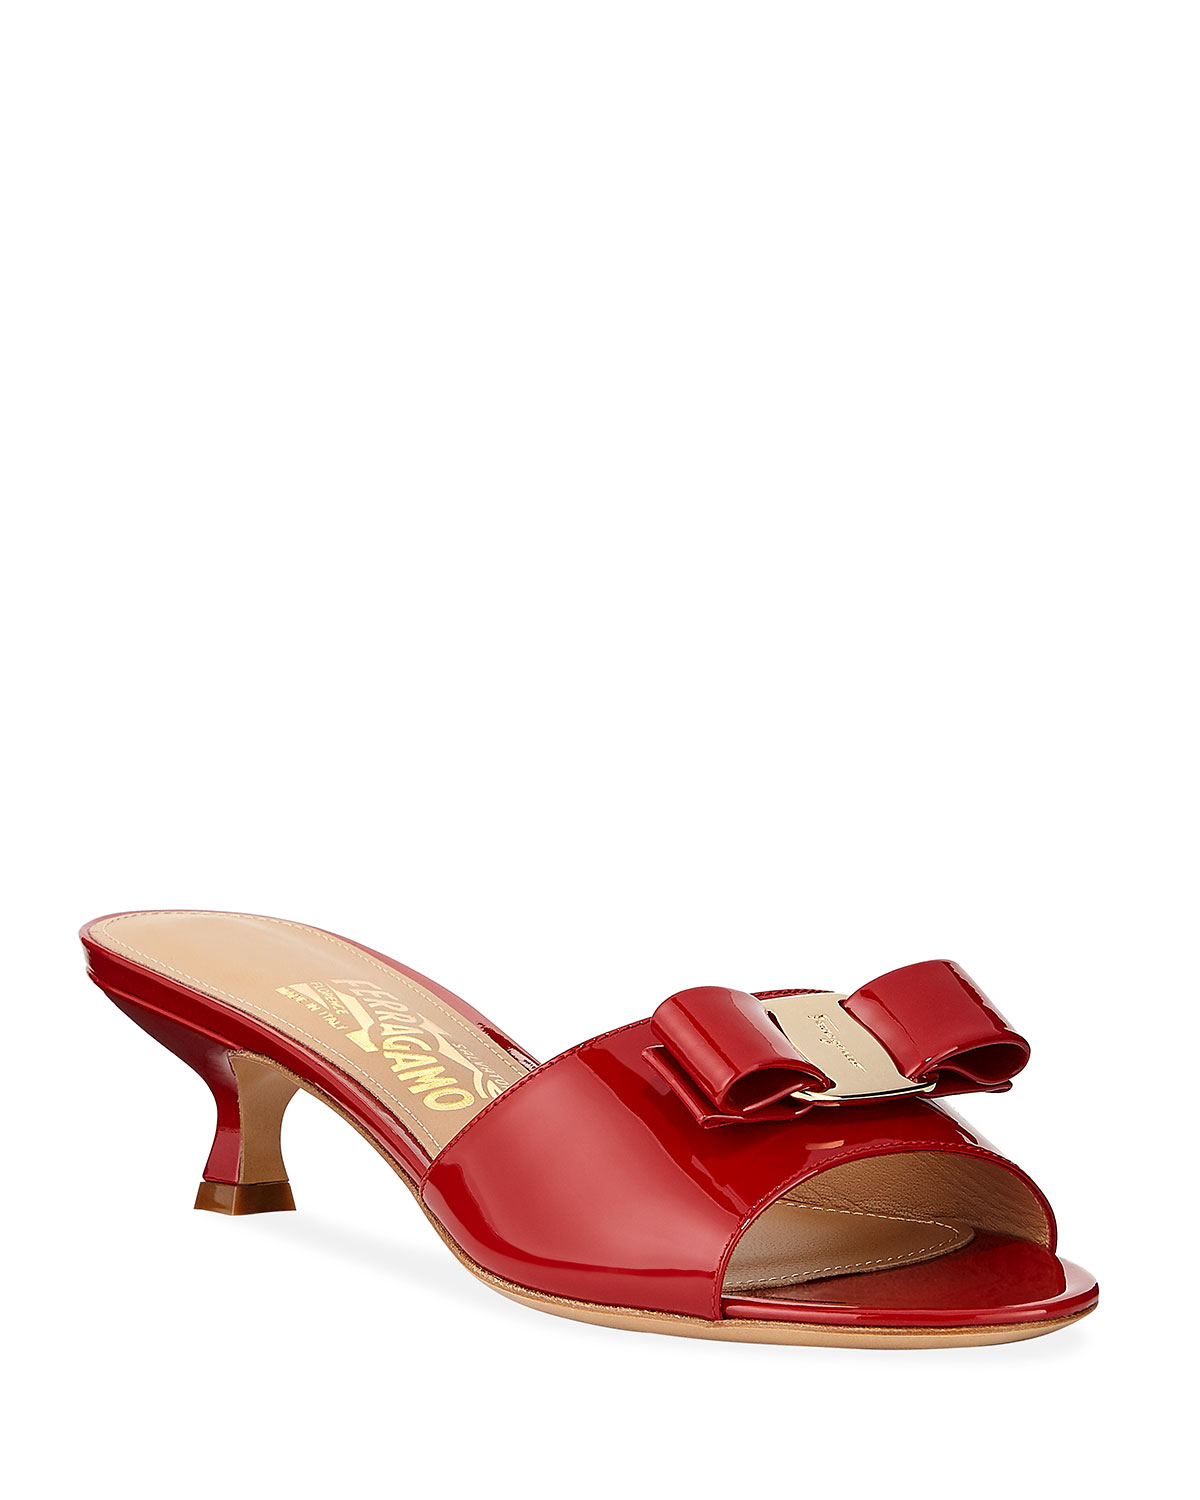 Ginostra Patent Bow Slide Sandals, Rosso